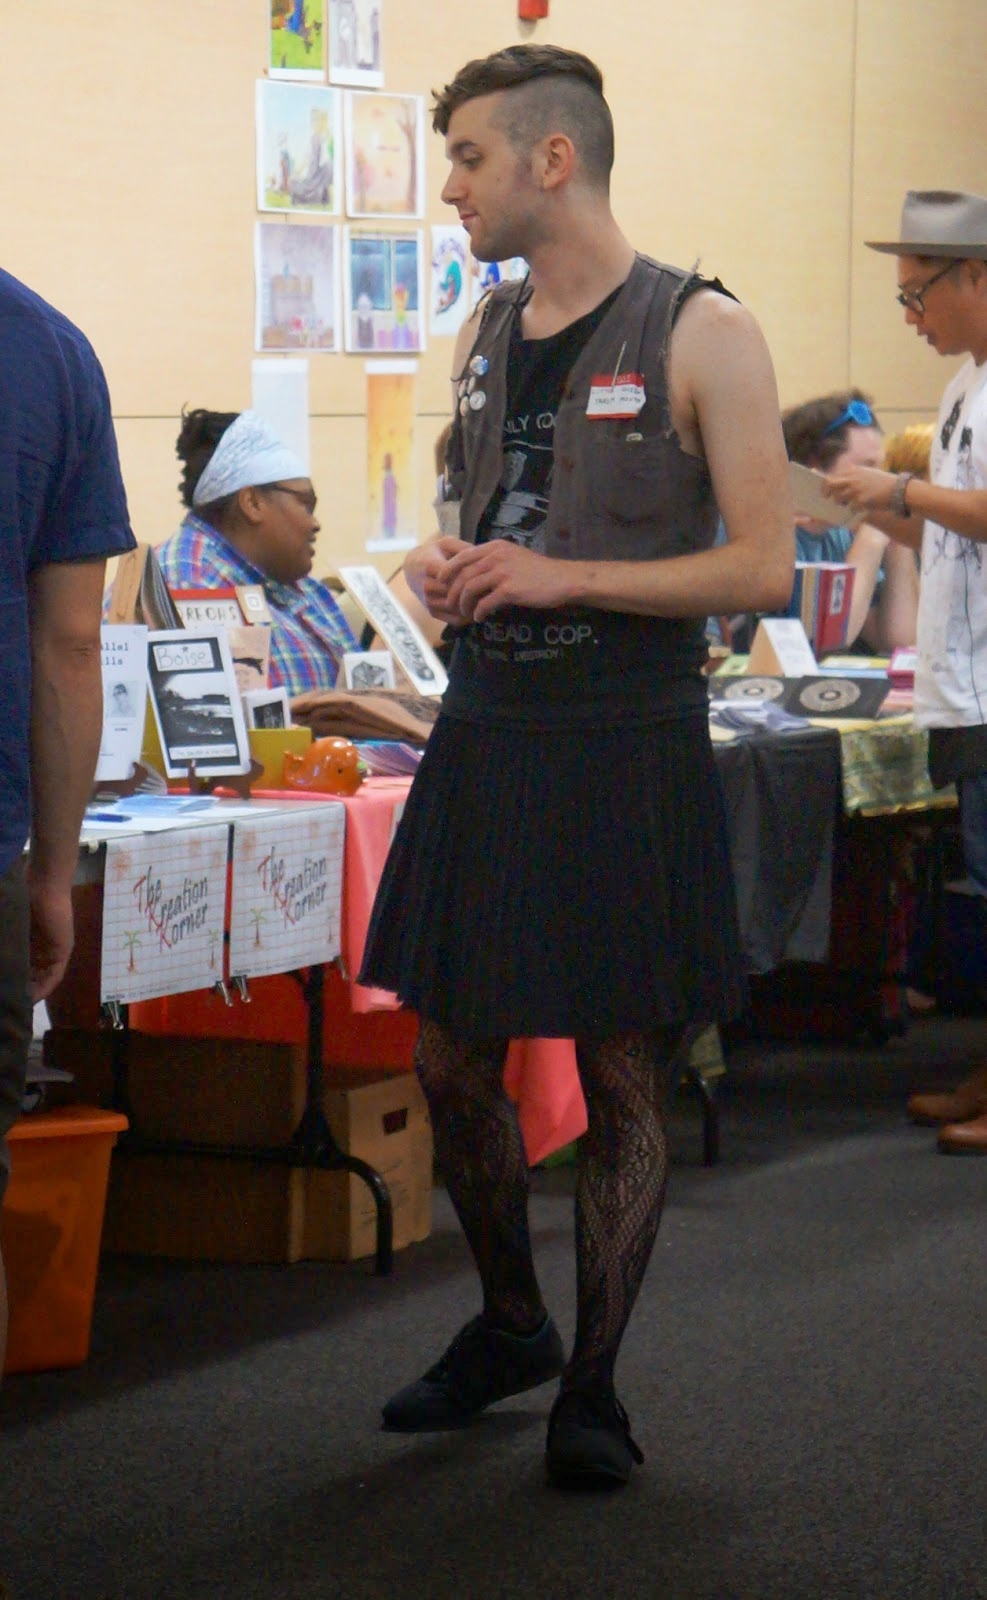 This bloke rocked a punk meets school teacher appeal with a tattered tee, pleated skirt, and lacy tights.